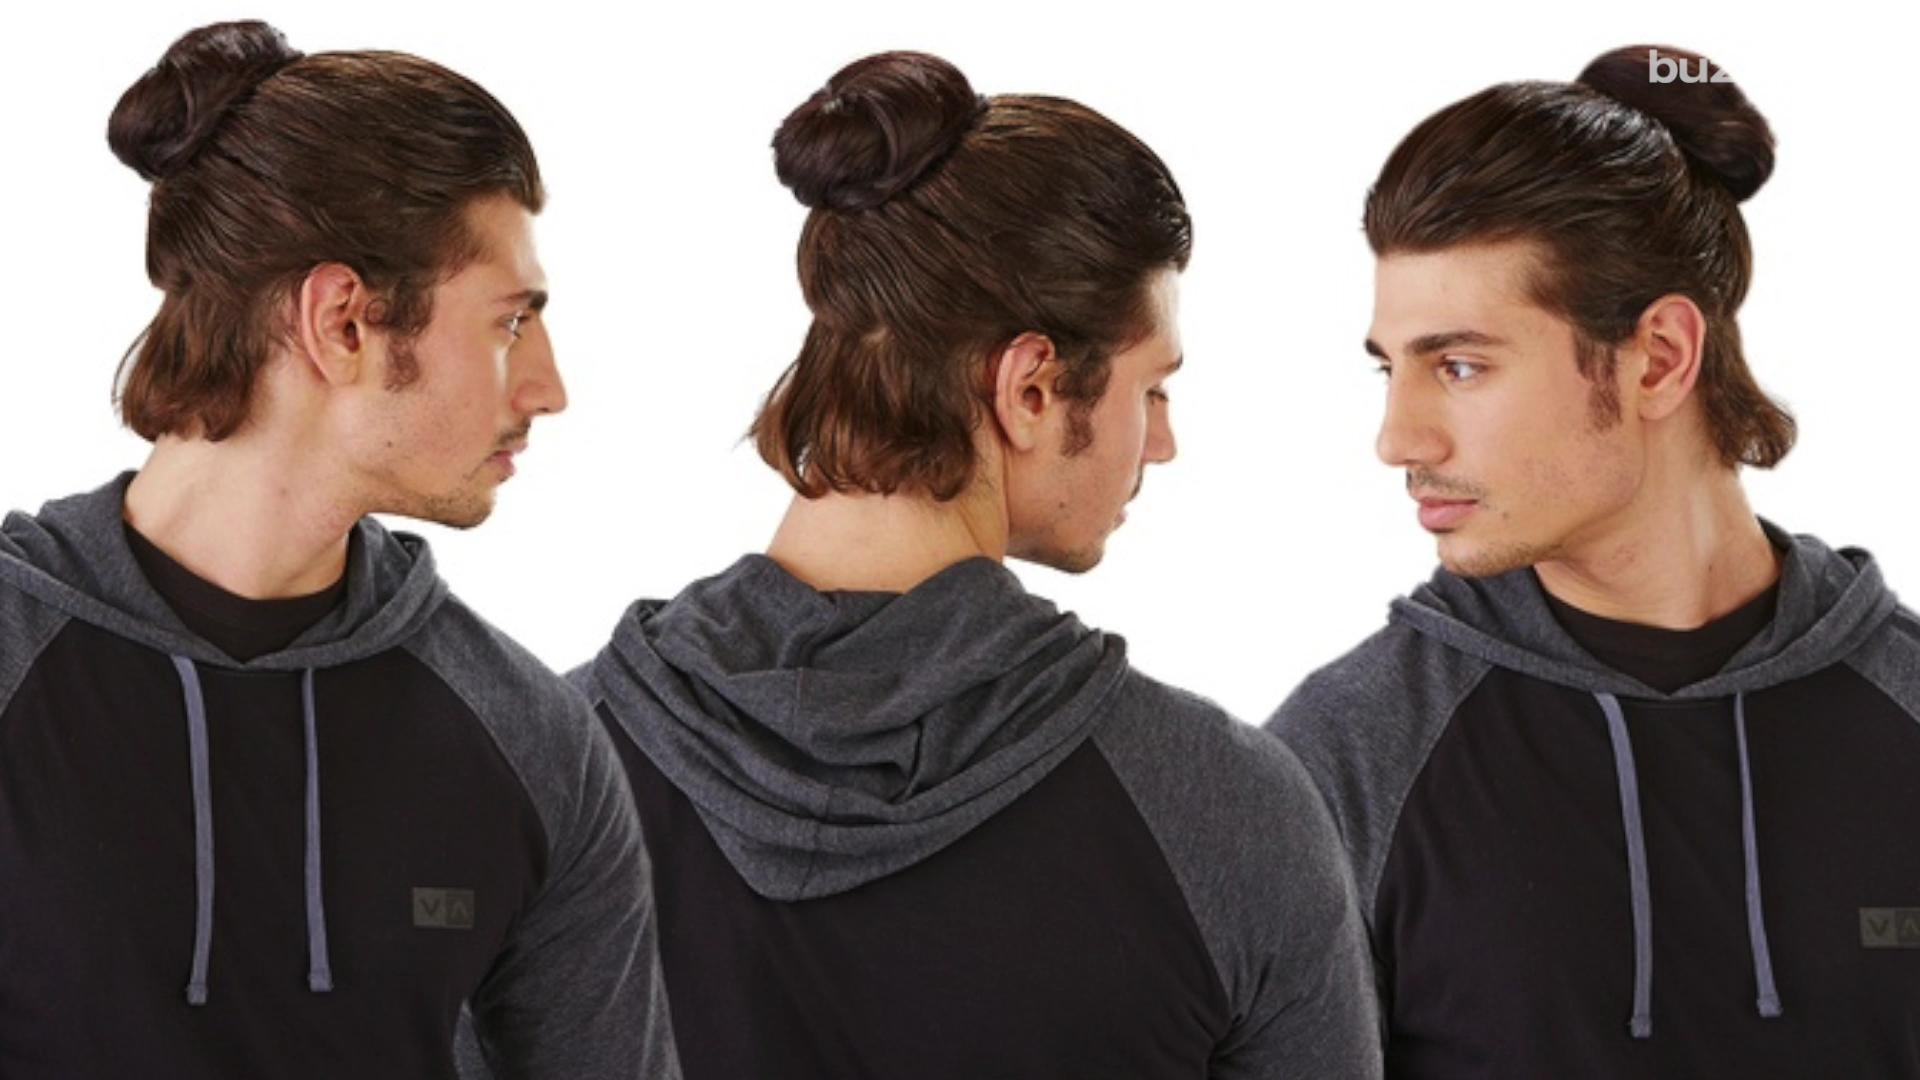 Clip on man buns are officially a new thing